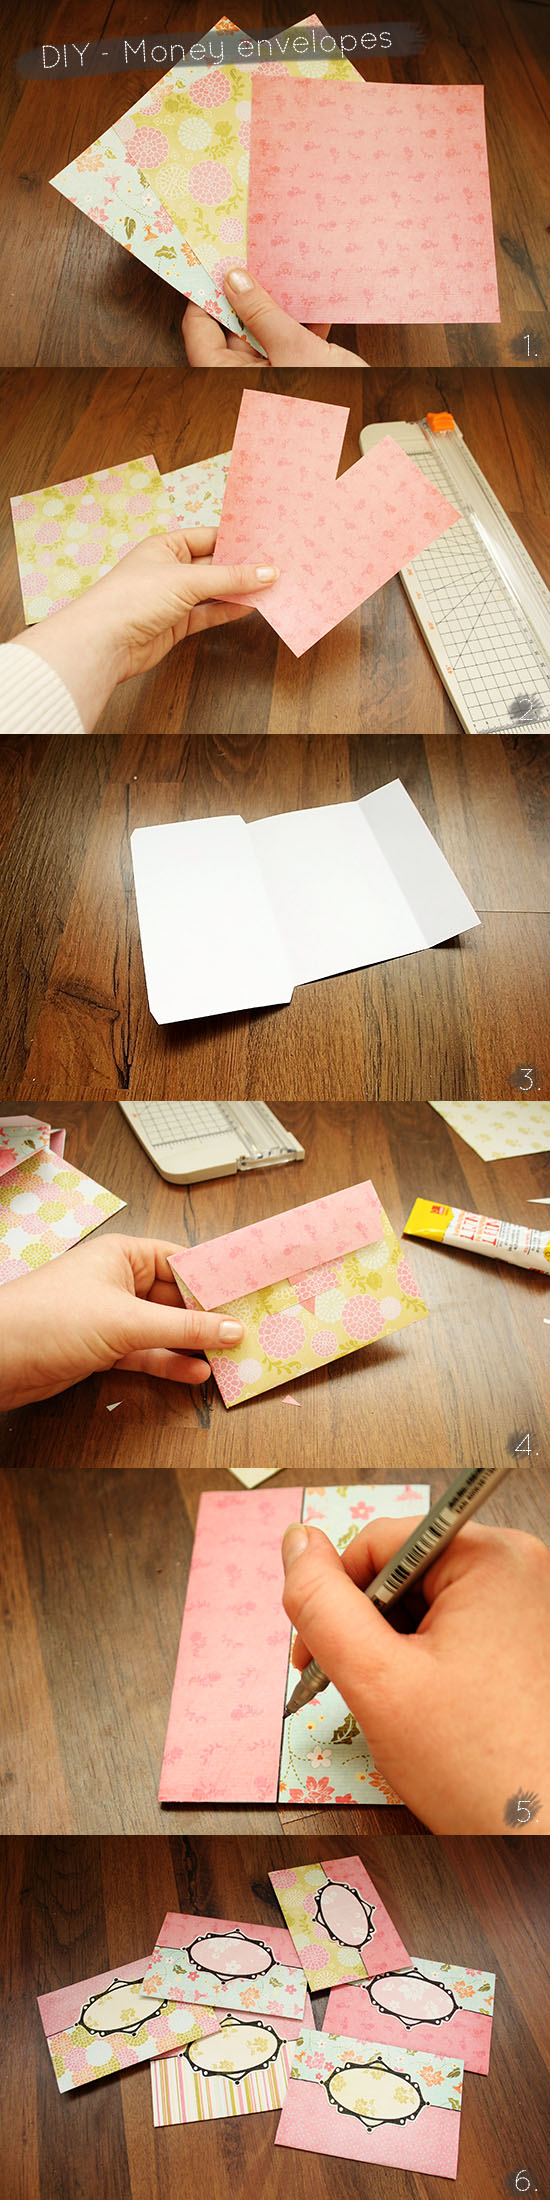 DIY - Money envelopes